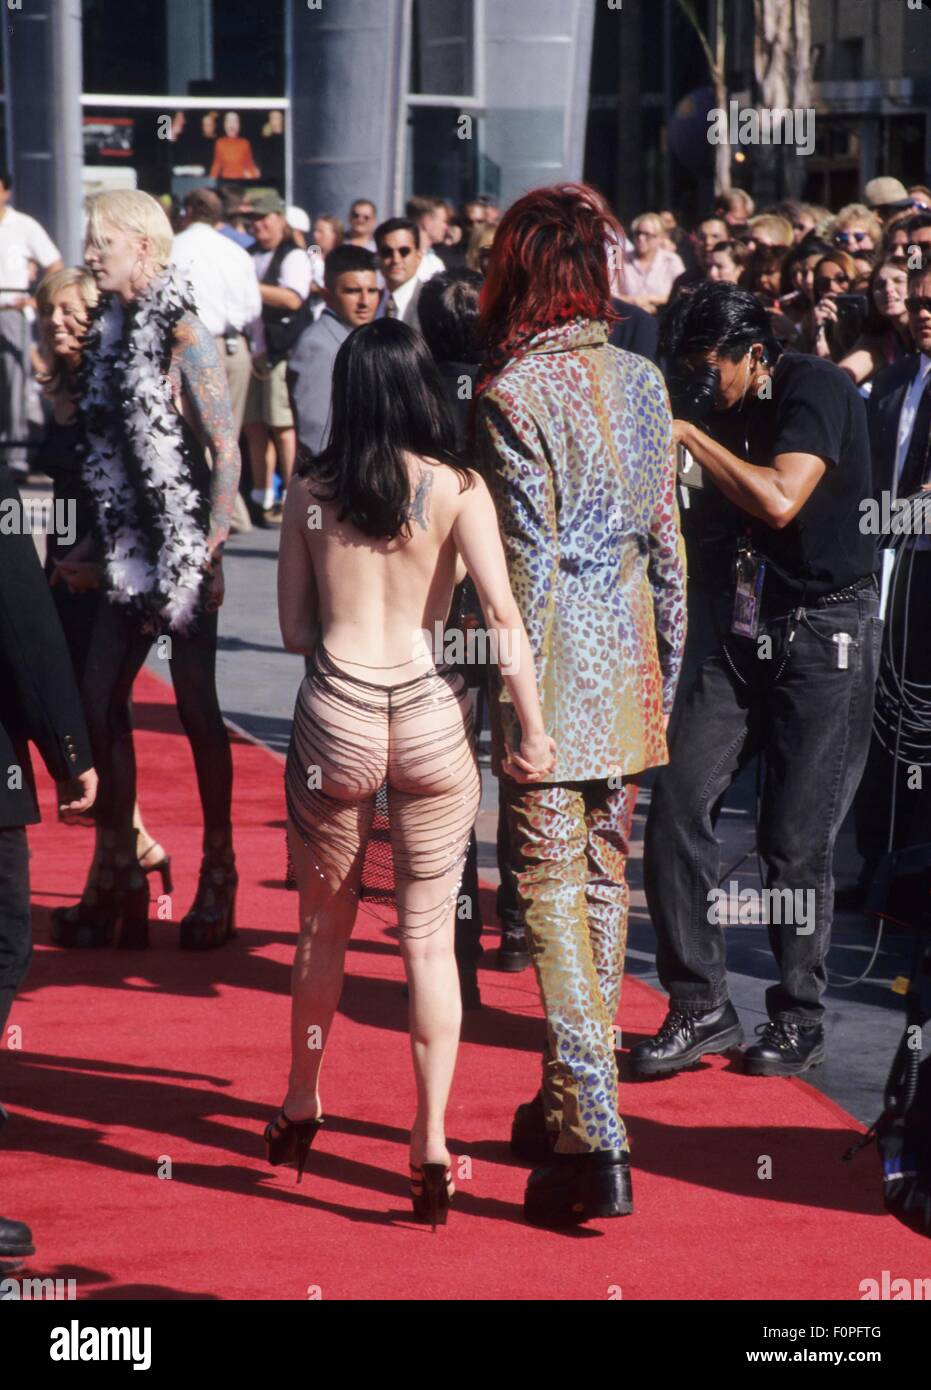 Rose Mcgowan At 15th Annual Mtv Video Music Awards In Los